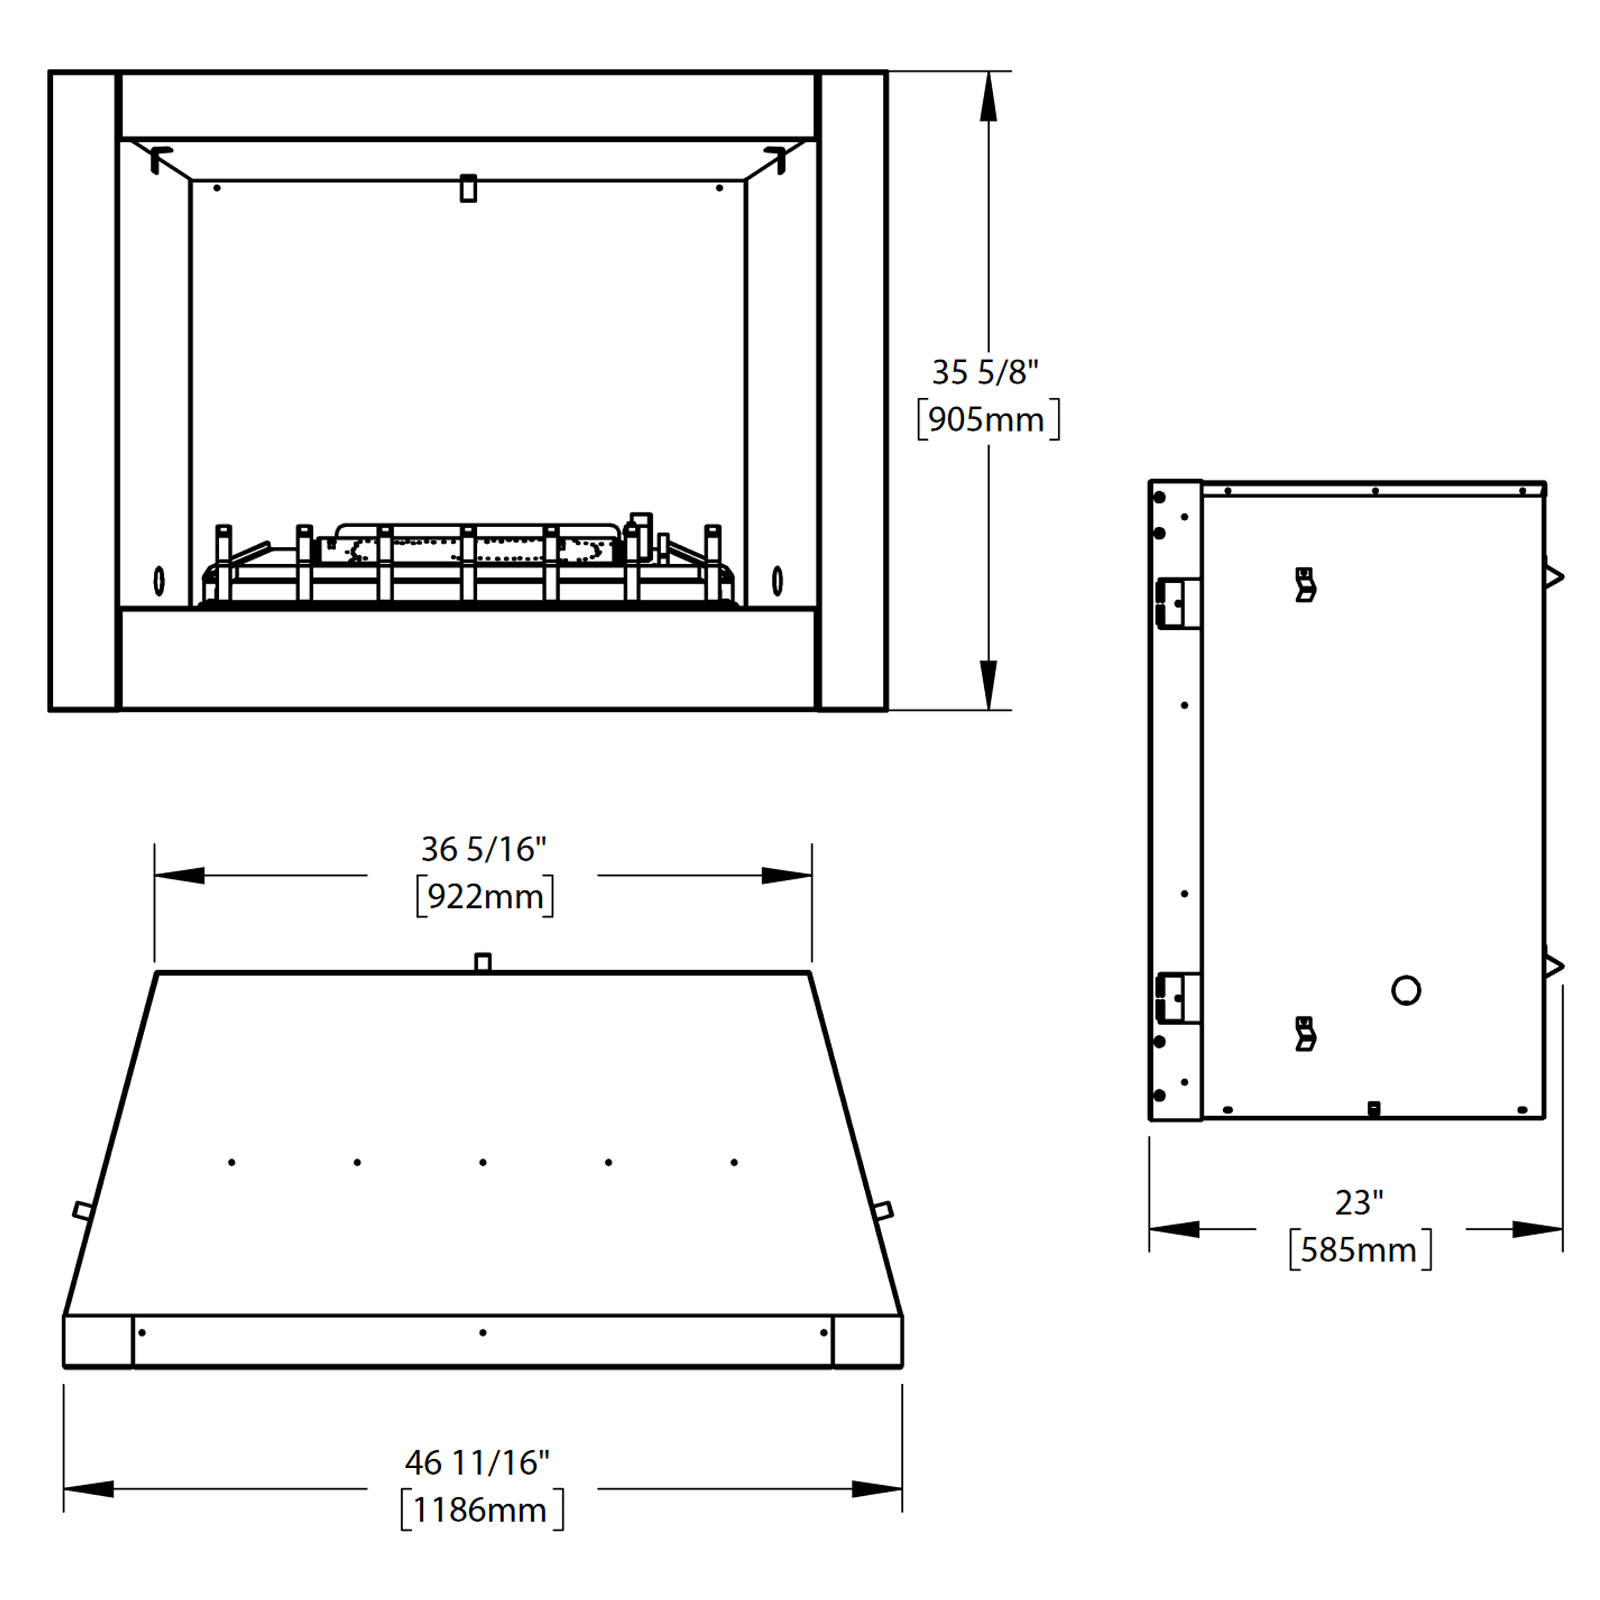 GSS42 Technical Drawing 1